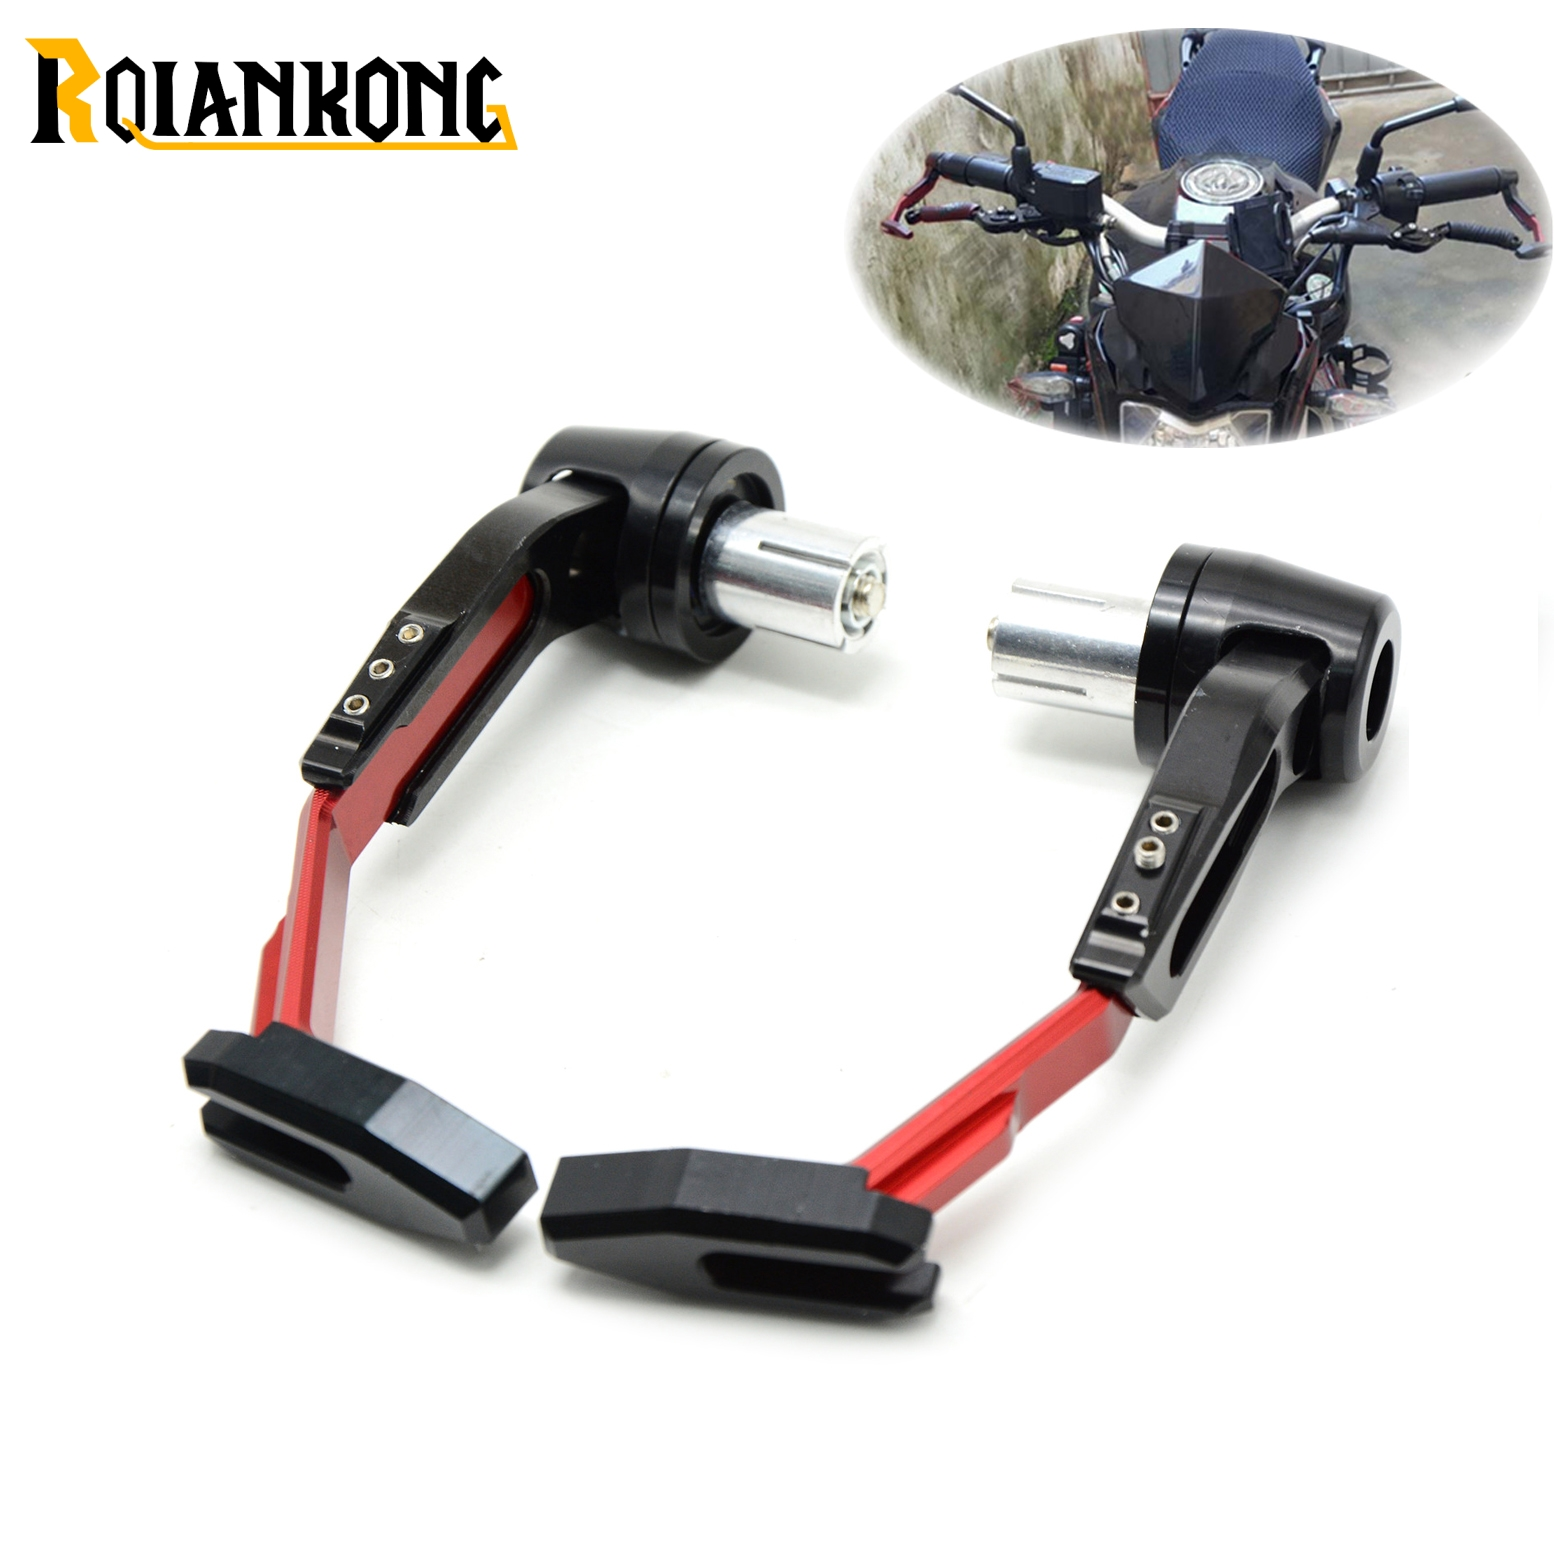 Universal 7/822mm Motorcycle Handlebar Clutch Brake Lever Protect Guard for Aprilia DORSODURO 1200 750 RST1000 FUTURA SHIVER GT top new cnc motorcycle brakes clutch levers for aprilia caponord etv1000 rst1000 futura 2001 2007 accessories free shipping